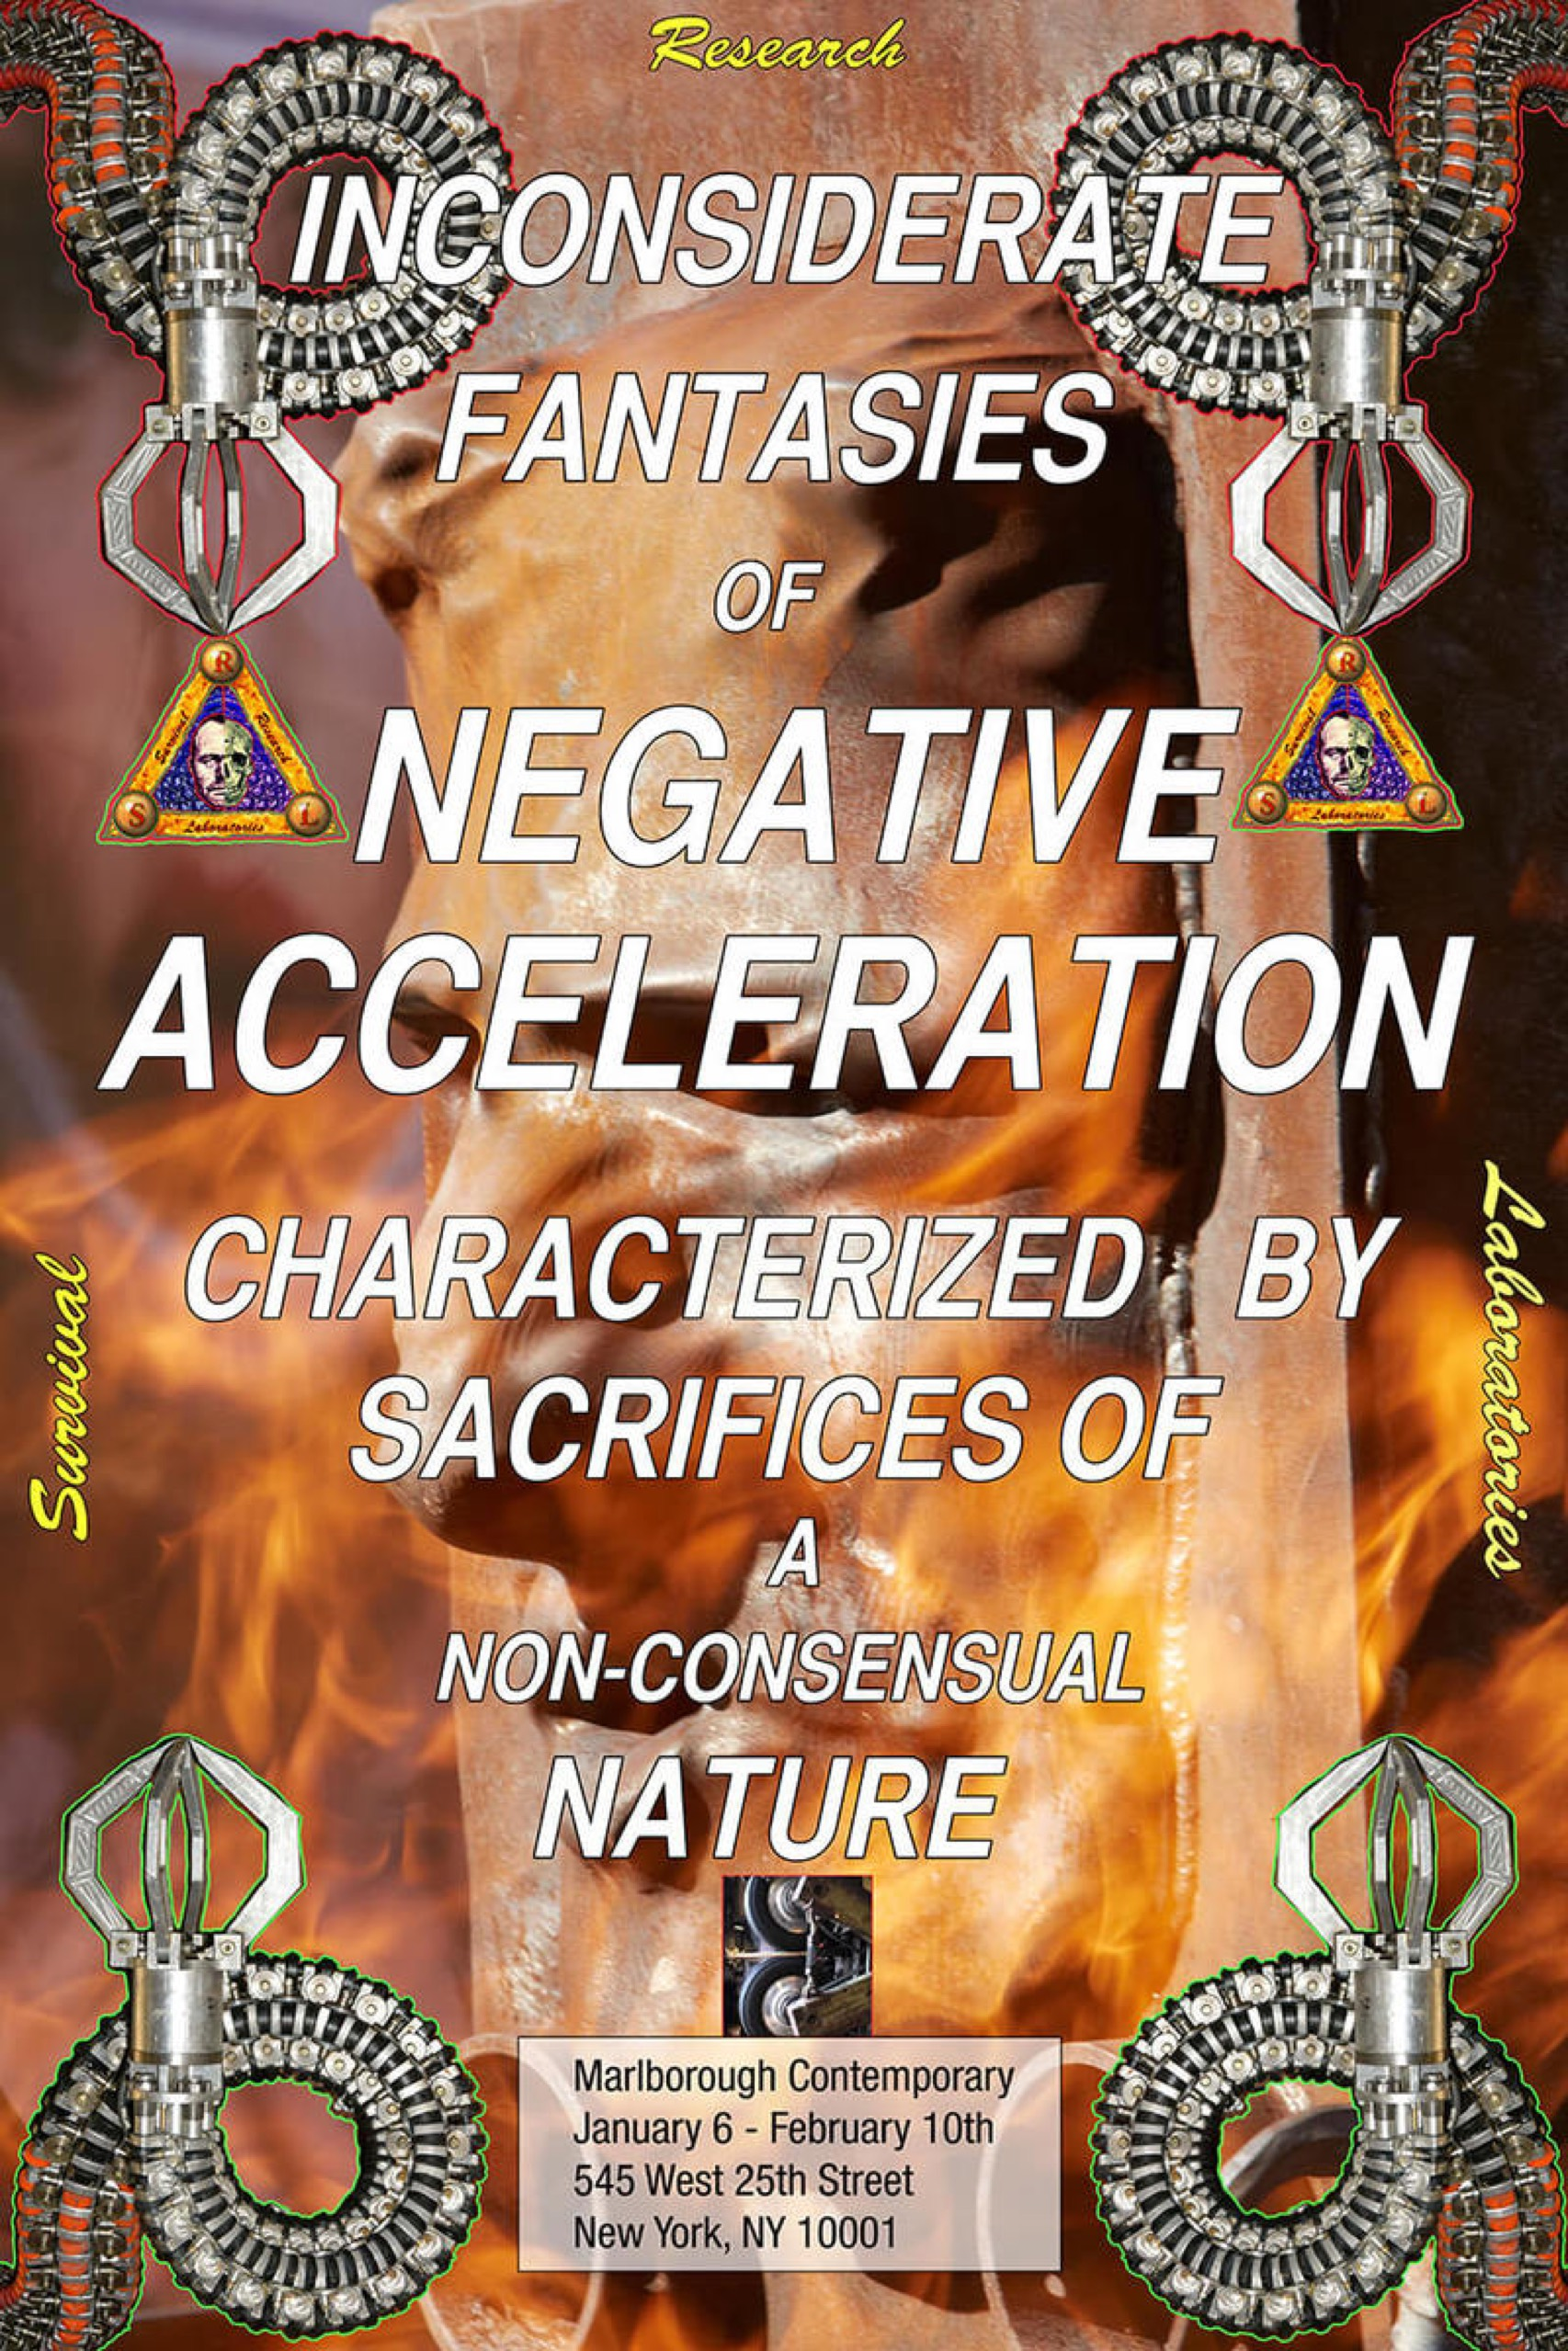 Survival-Research-Laboratories-Inconsiderate-Fantasies-Of-Negative-Acceleration-Characterized-By-Sacrifices-Of-A-Non-Consensual-Nature-Poster-Marlborough-Contemporary-New-York-Gallery